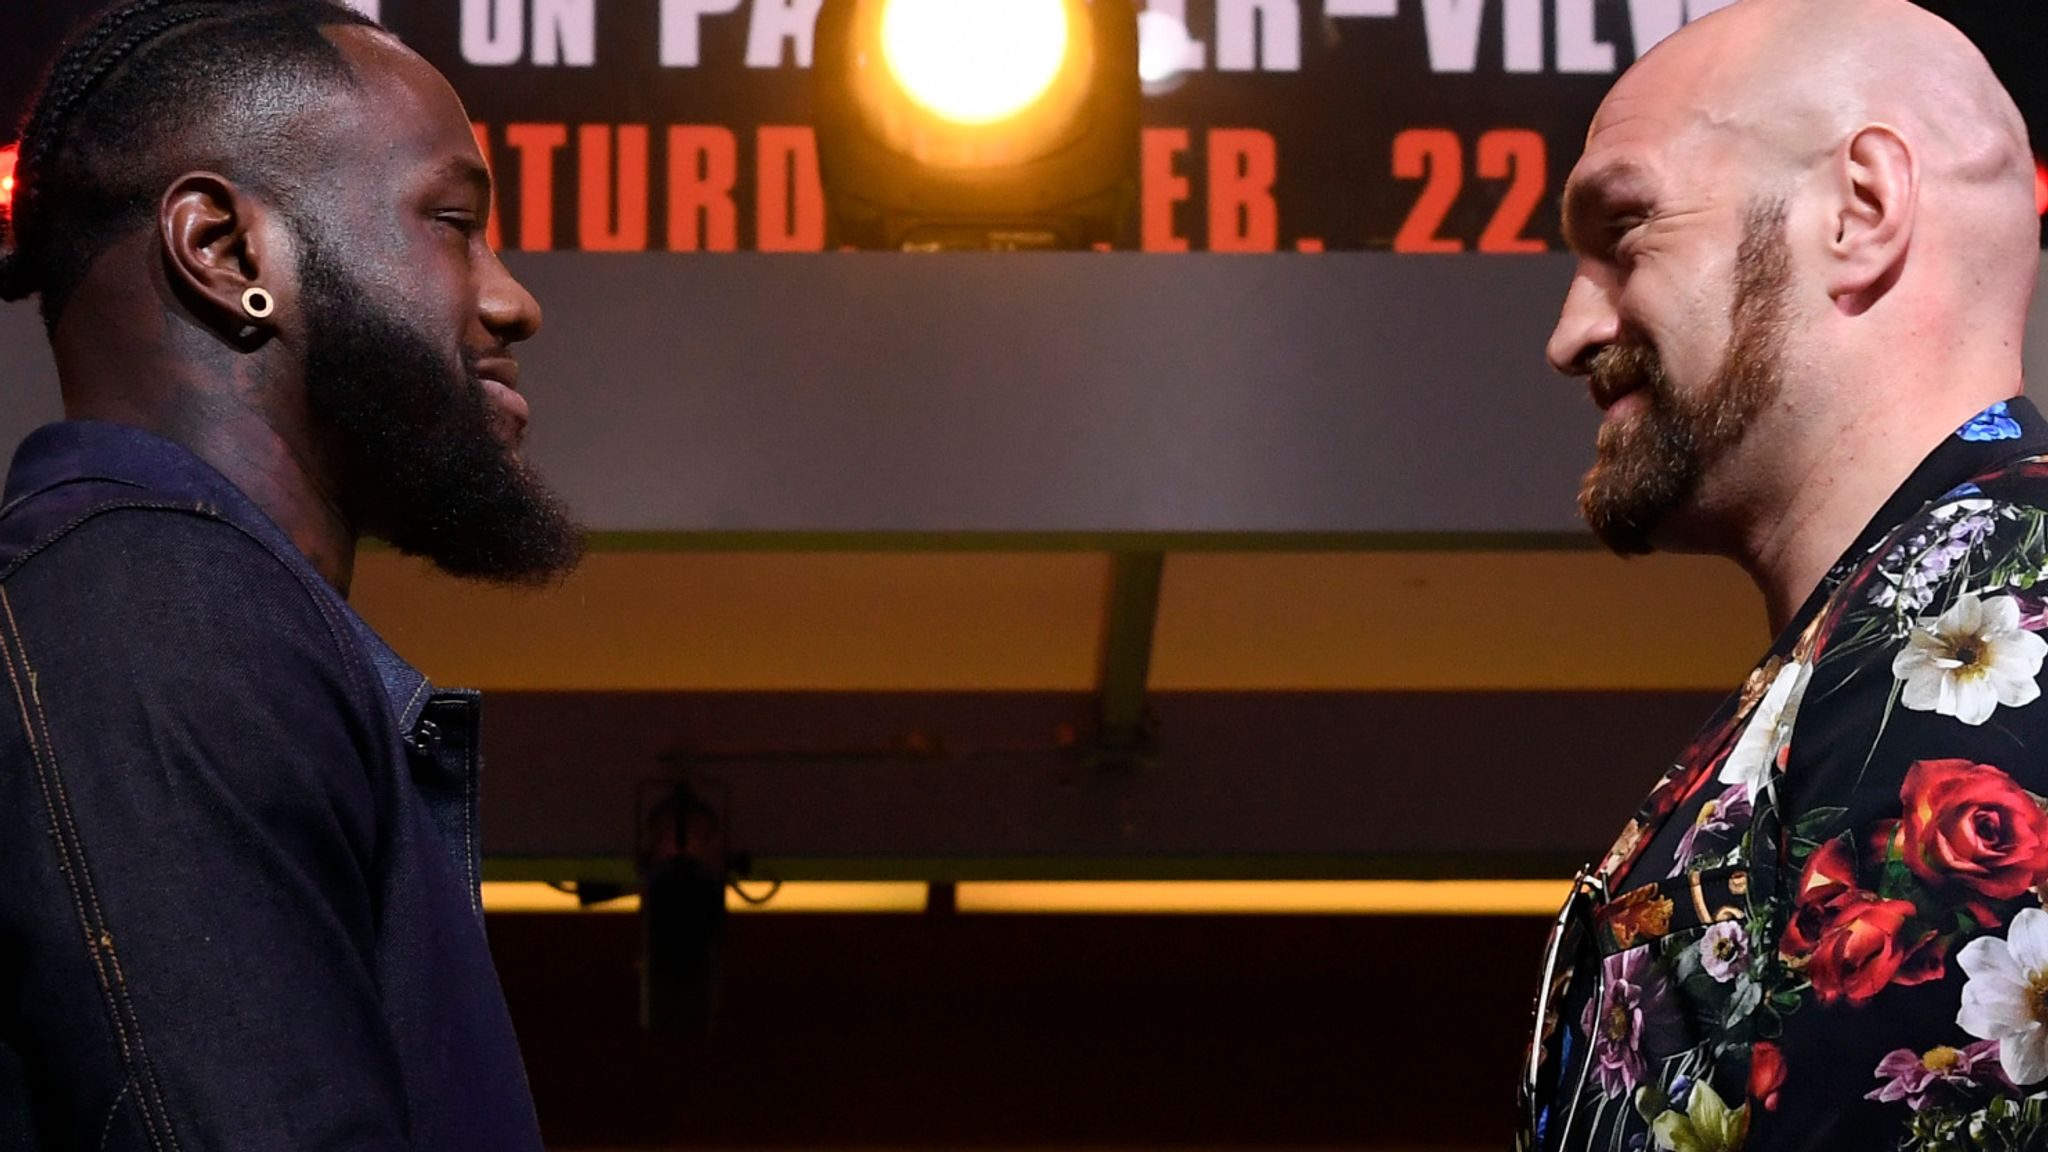 Wilder vs Fury 2: Deontay Wilder claims he didn't feel Tyson Fury's power in first fight